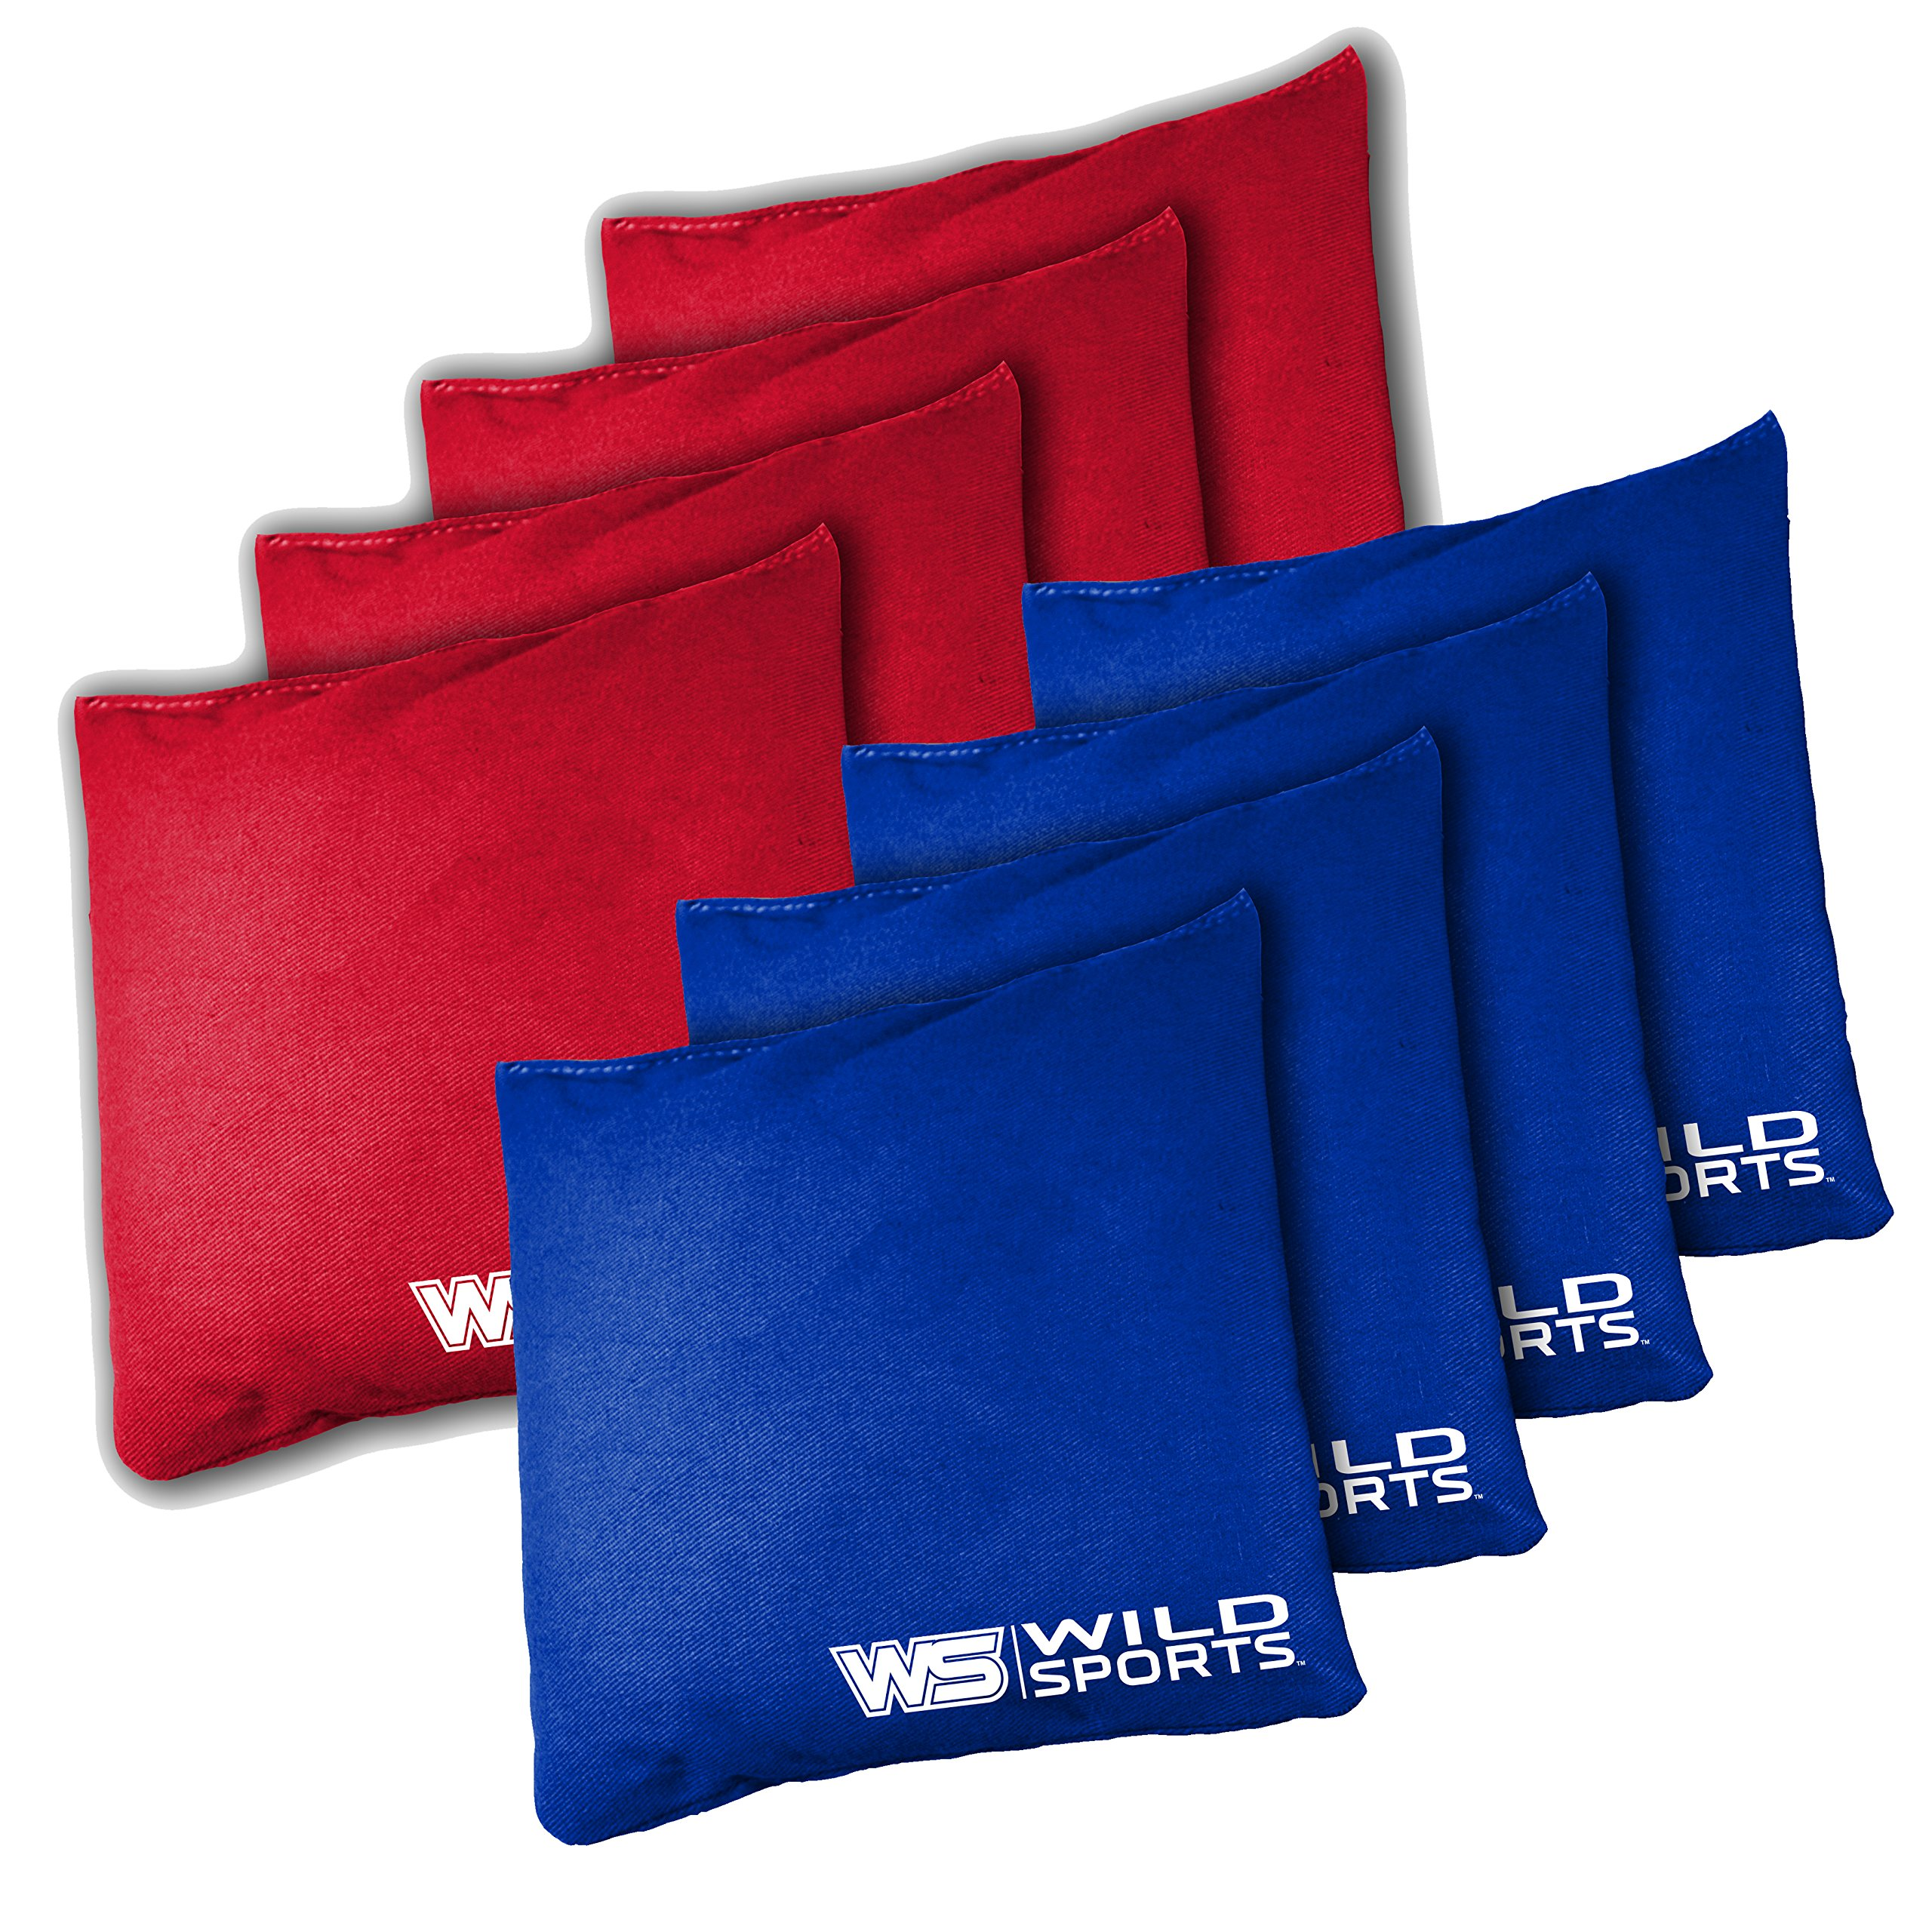 Wild Sports Tailgate Toss Regulation Bean Bags, Red/Royal Blue, 16-Ounce